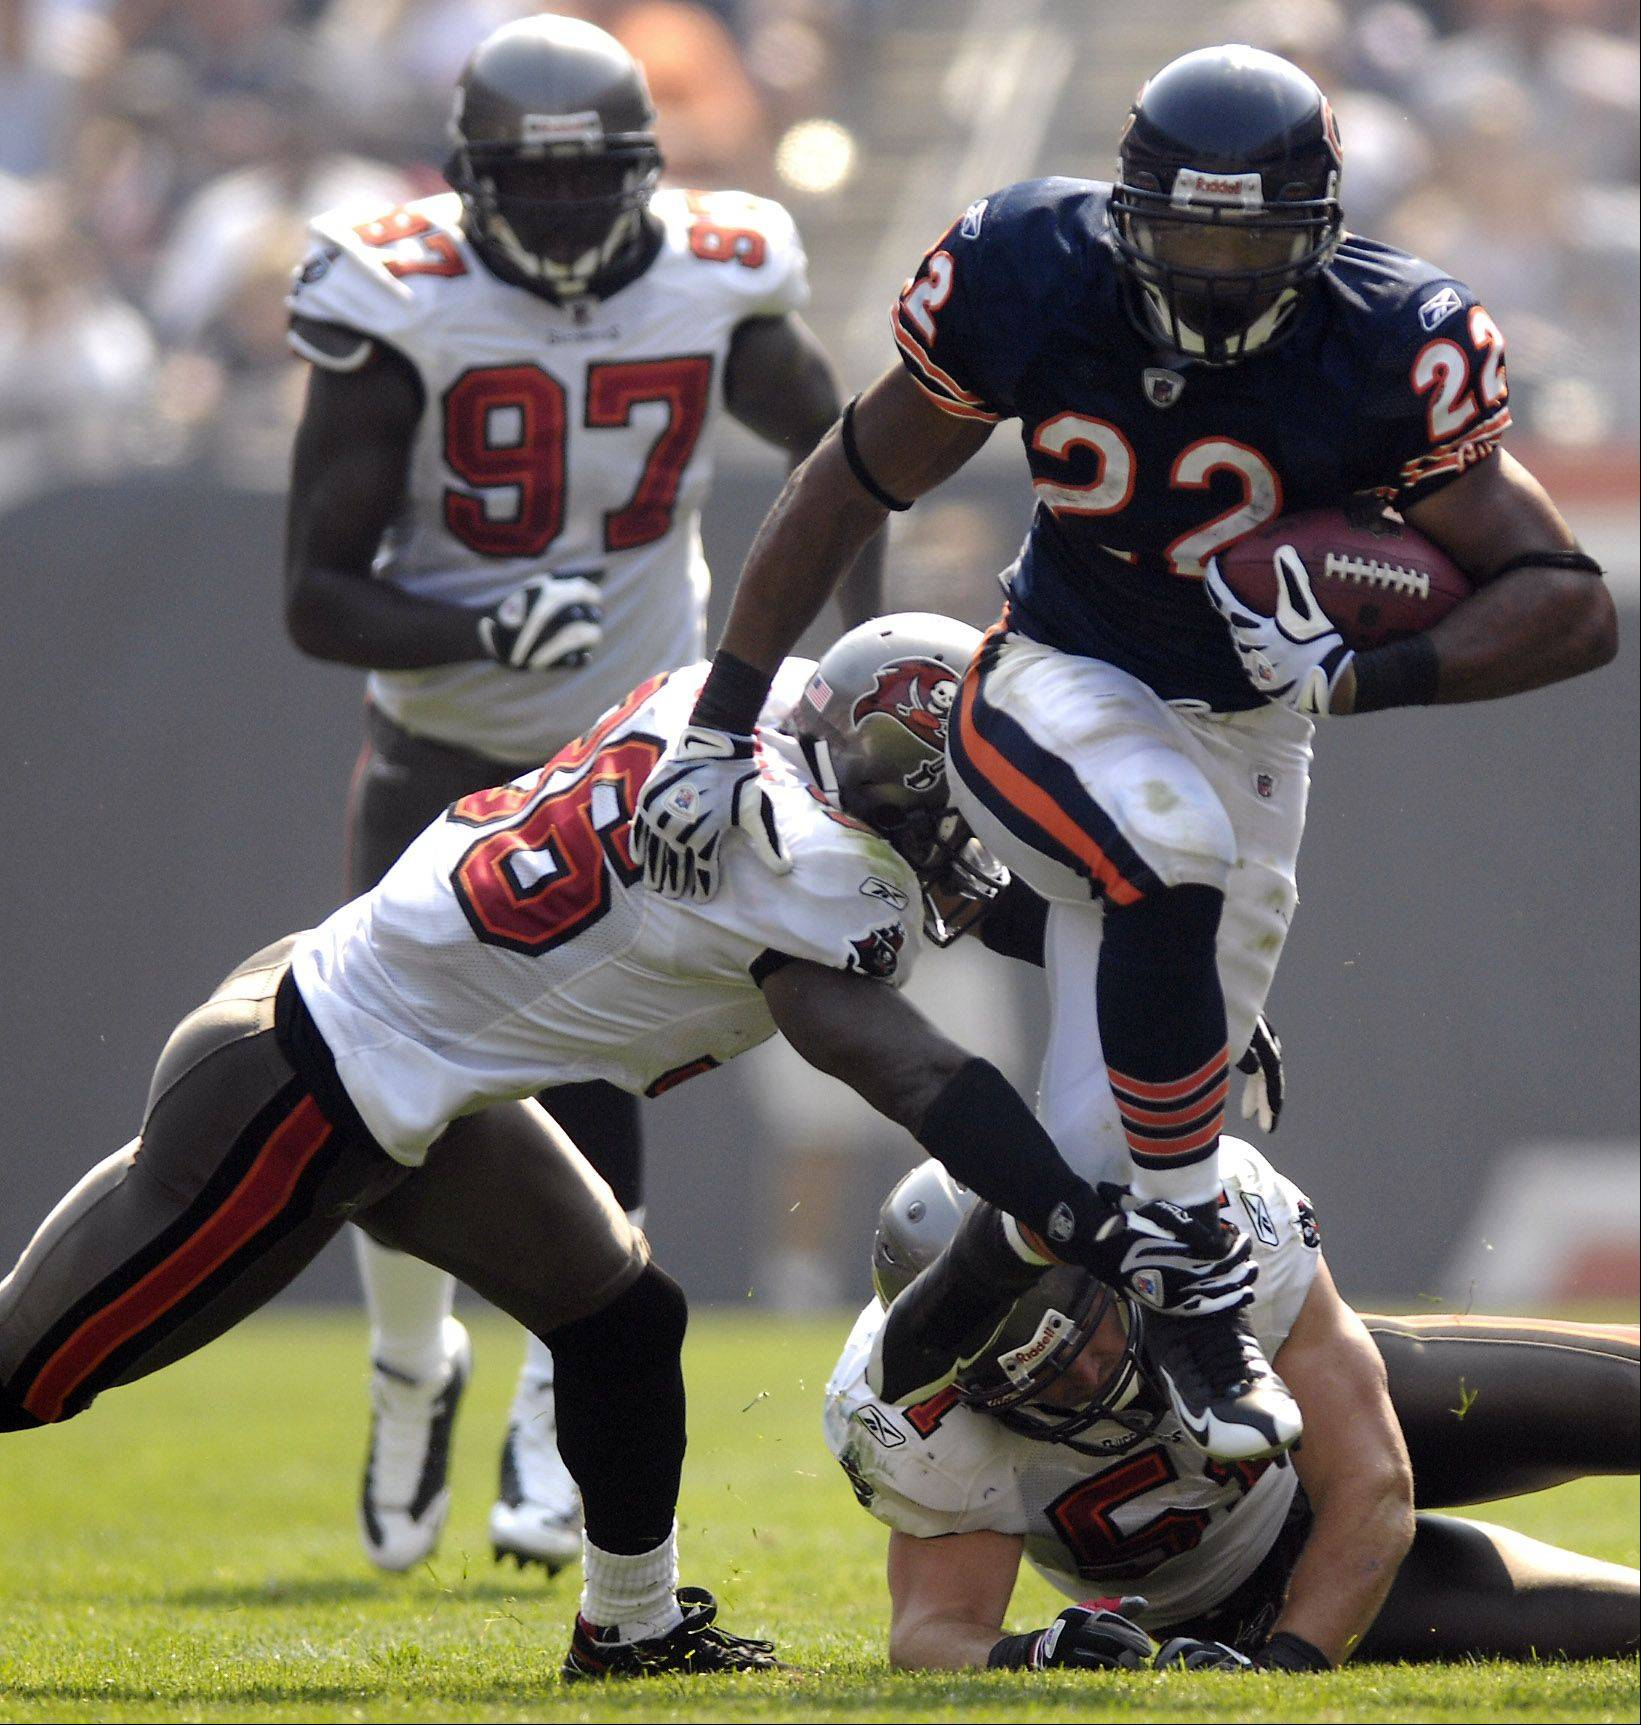 The Bears and running back Matt Forte have put contract talks on hold. Forte was looking for an extension as he headed into the fourth and final year on his rookie contract, but general manager Jerry Angelo said talks are most likely off until after the season.